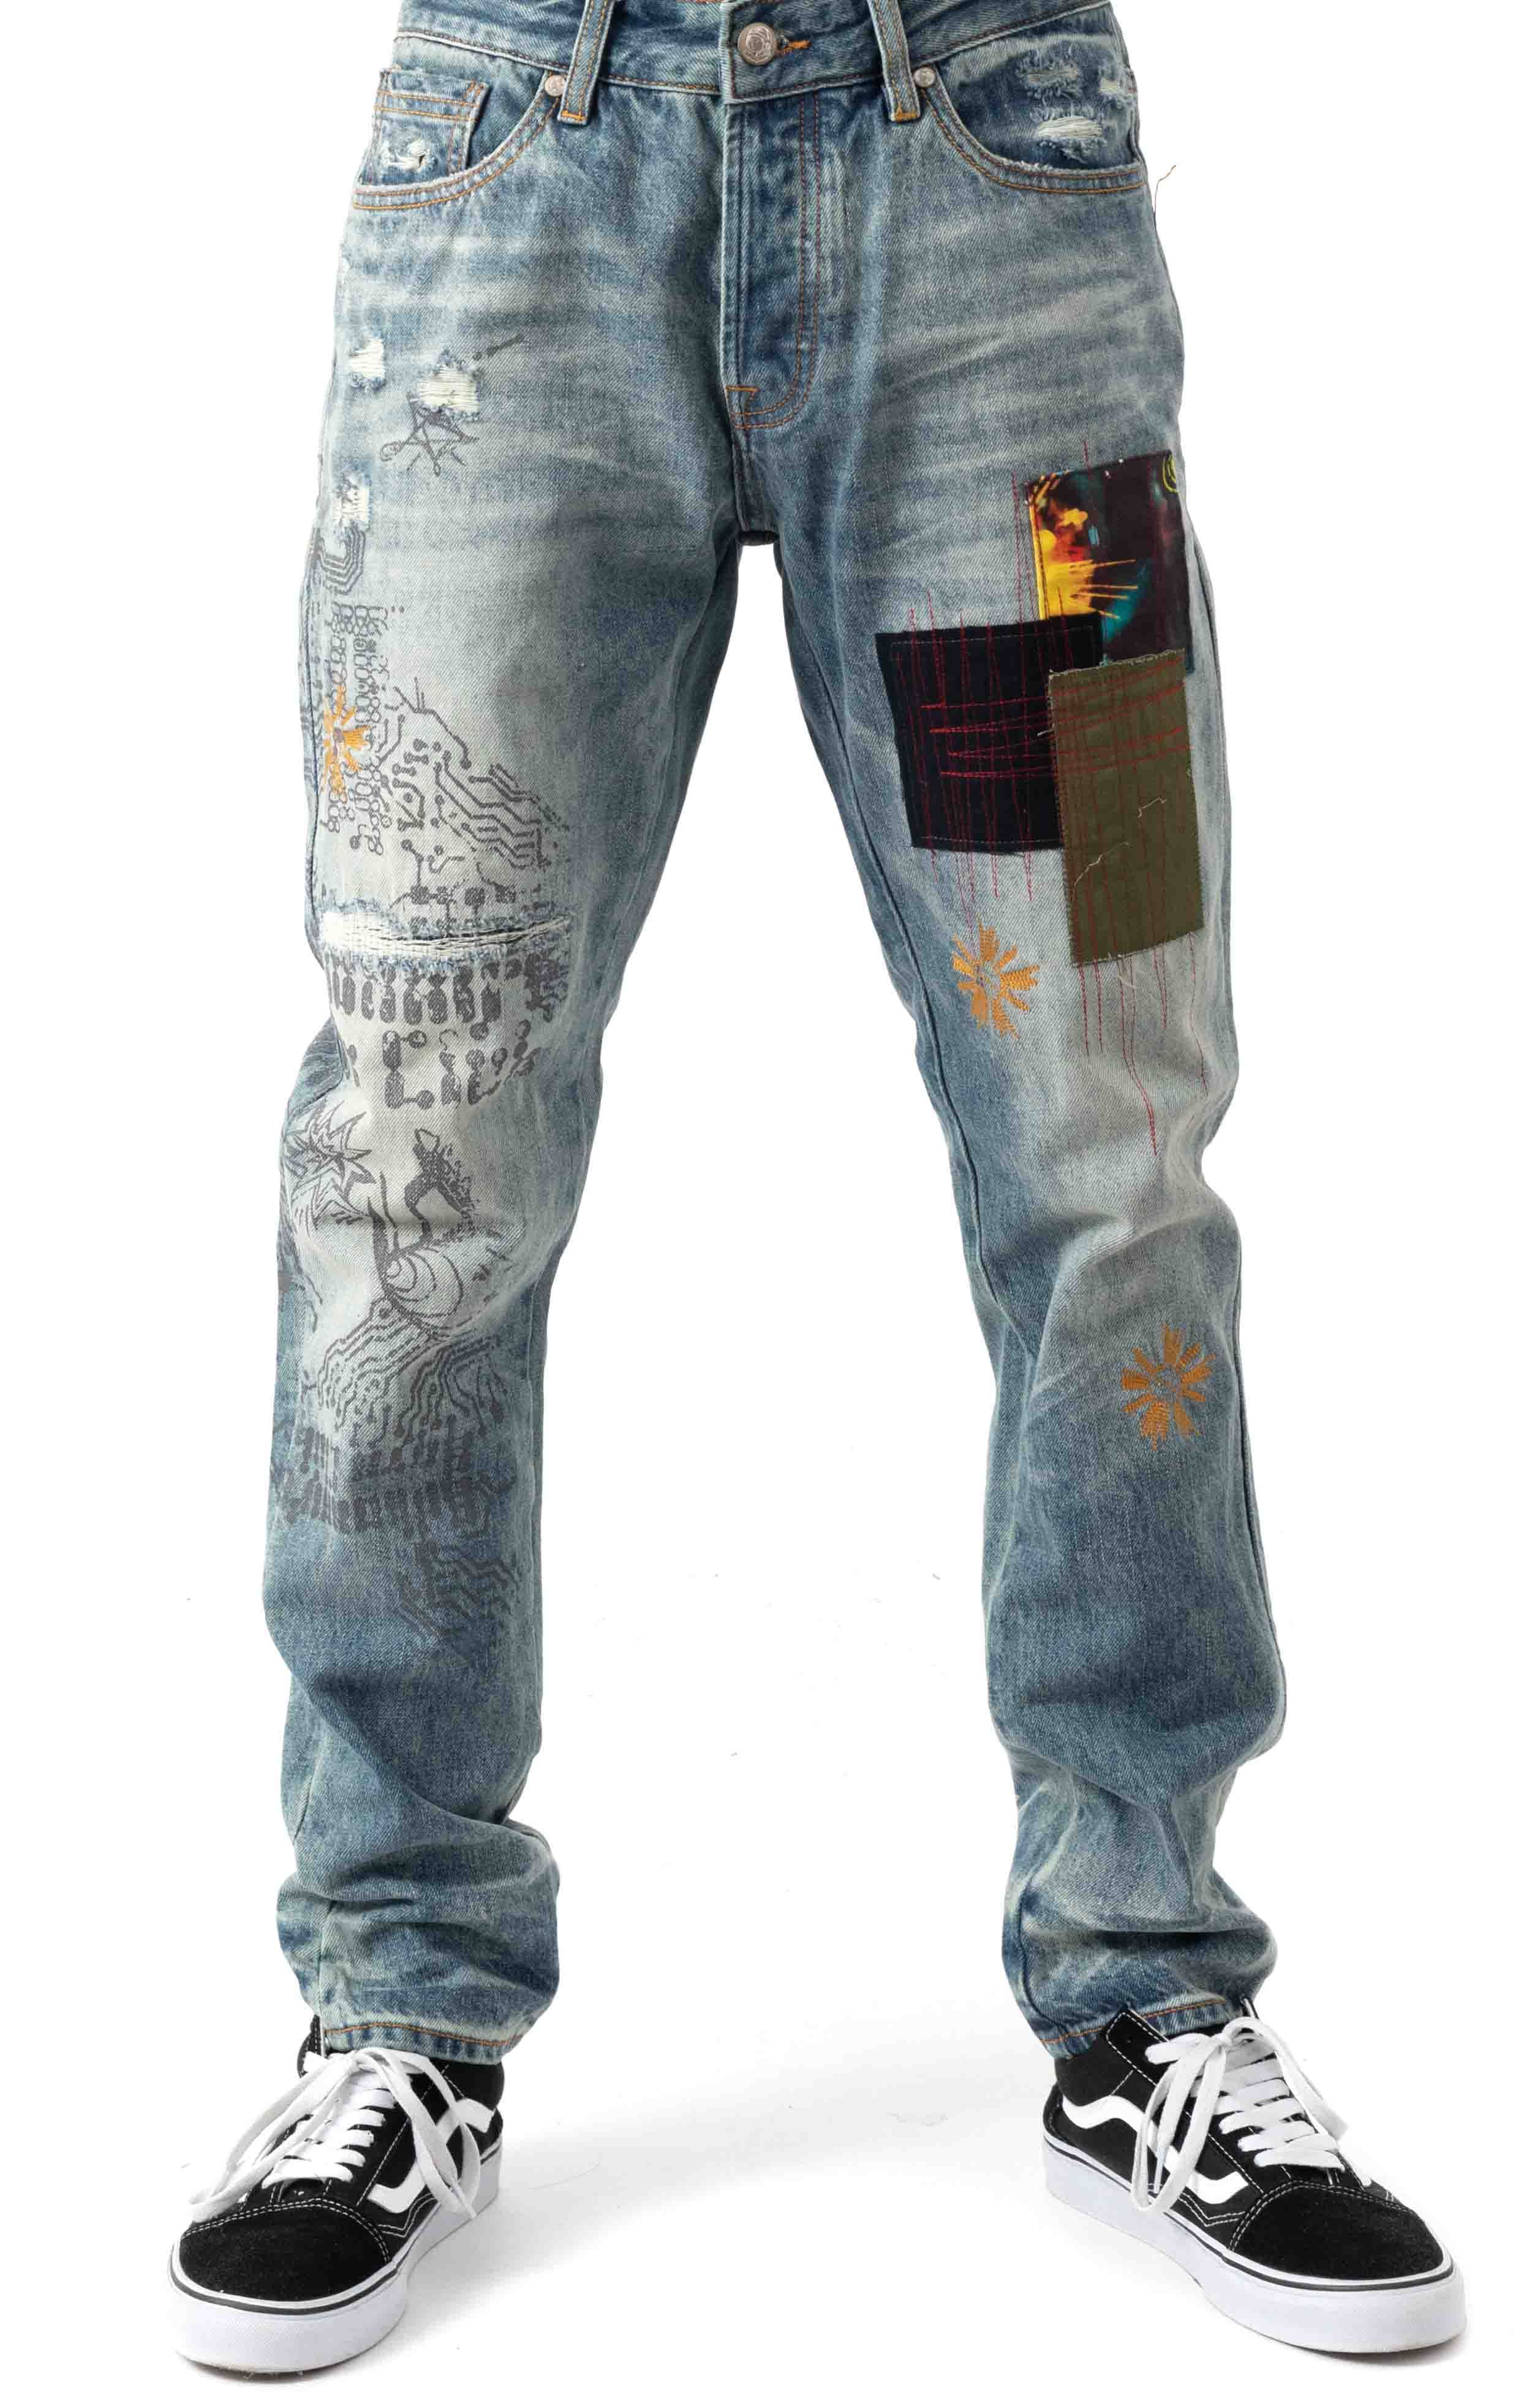 BB Circuits Jeans - Helix